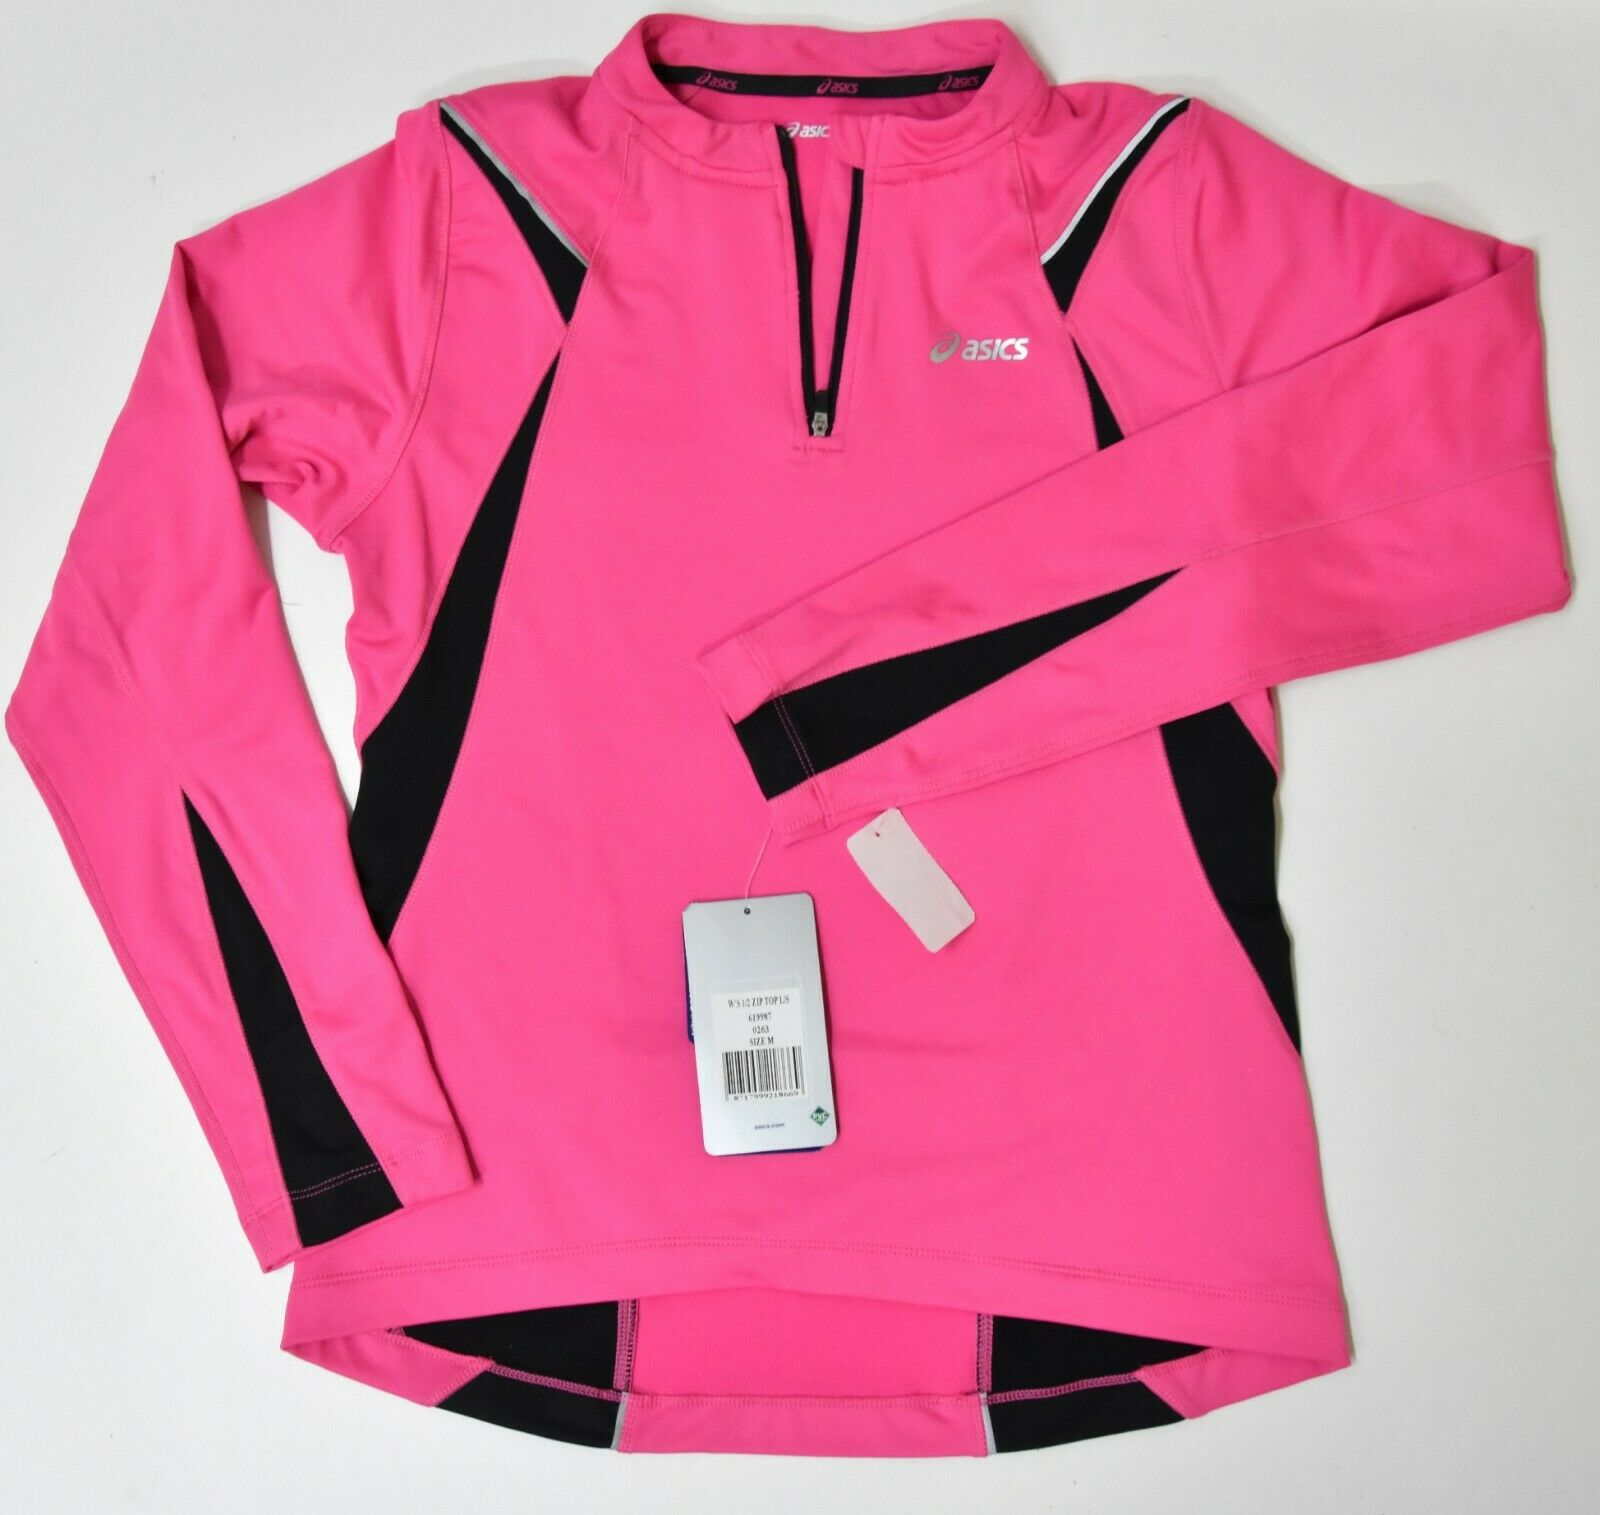 Asics DUO TECH damen Zip Top Sport long sleeve Athletic running jacket BRAND NEW